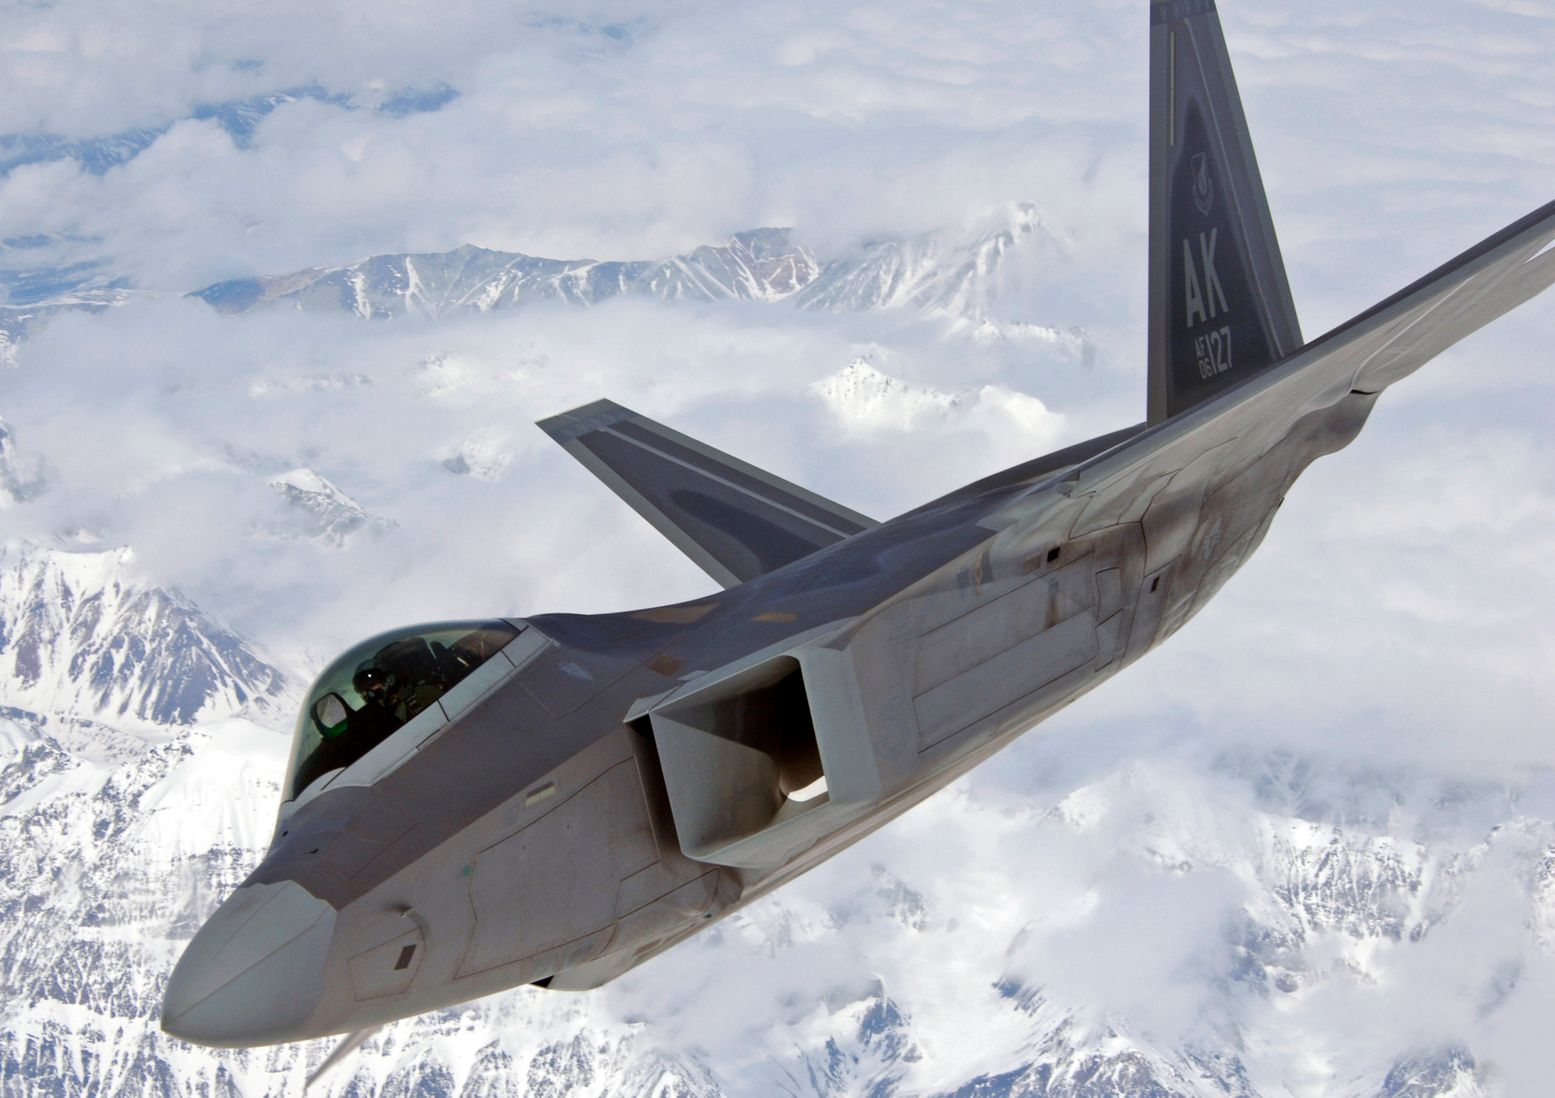 Unstealthed: This Is How Easily the F-22 Can Lose Its Radar-Absorbing